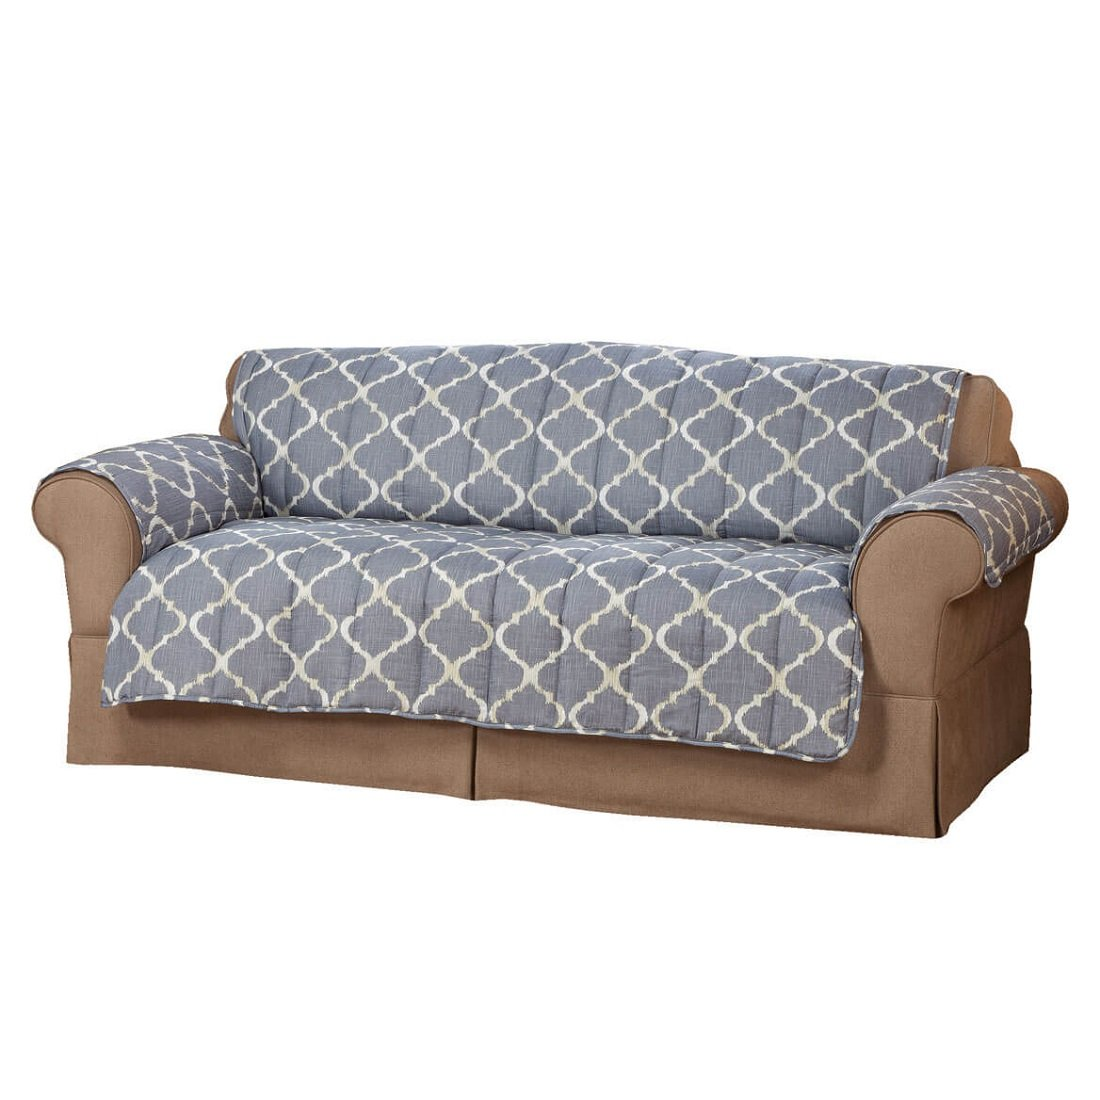 Spill-Proof Soft Microfiber Sofa Slipcover w/Flaps - 100% Polyester, Machine Washable - Seat: 36.5'' L x 68'' W - Back: 39'' L x 68'' W by MS Home